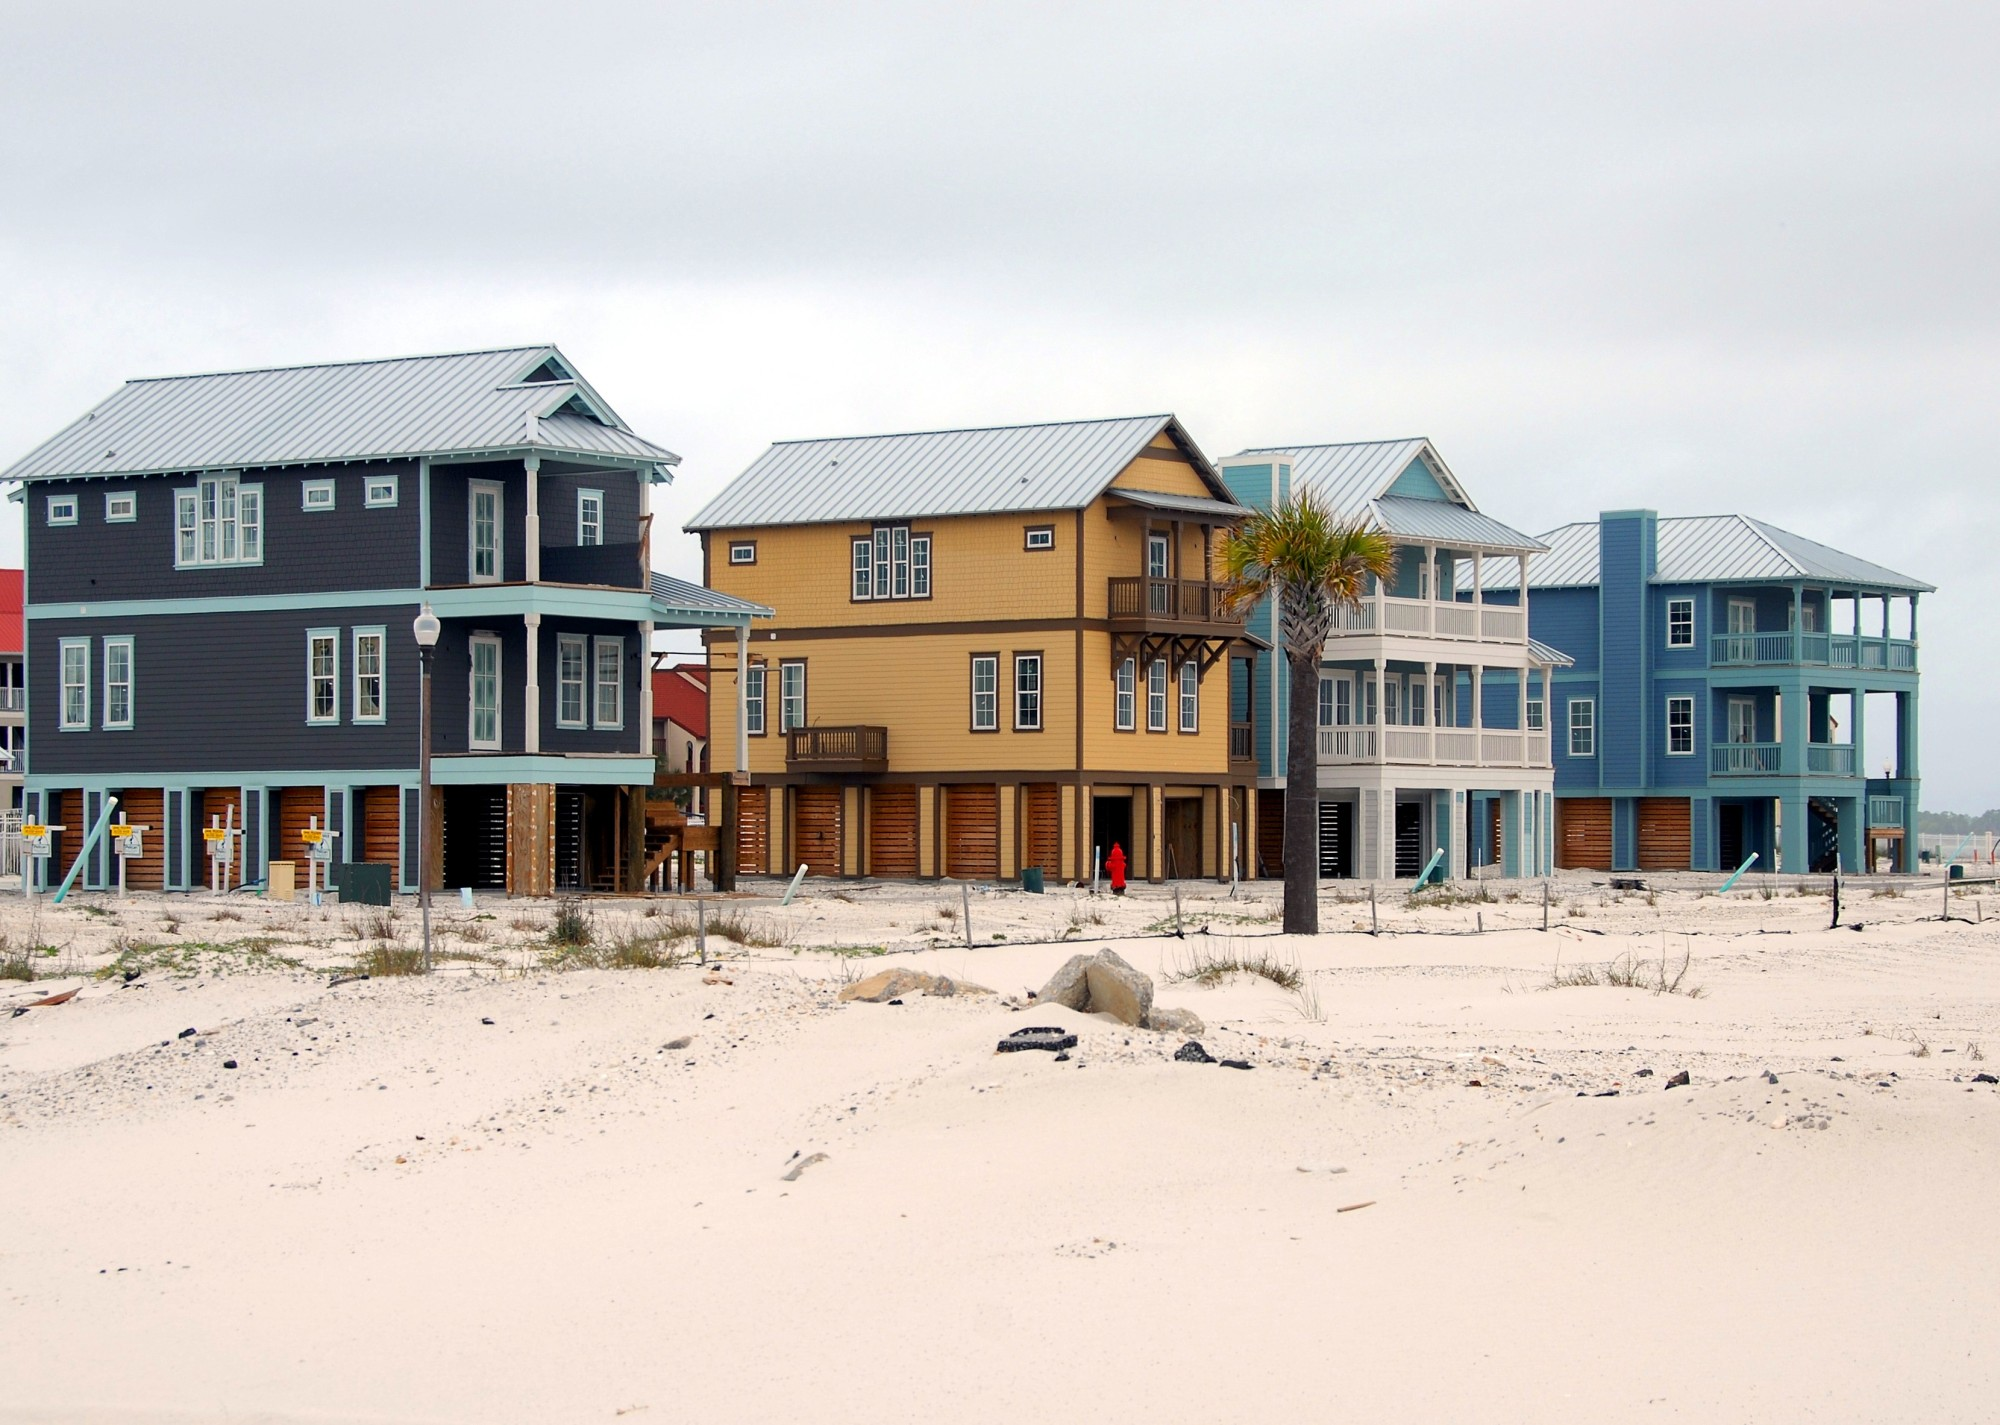 colorful beach houses in a row